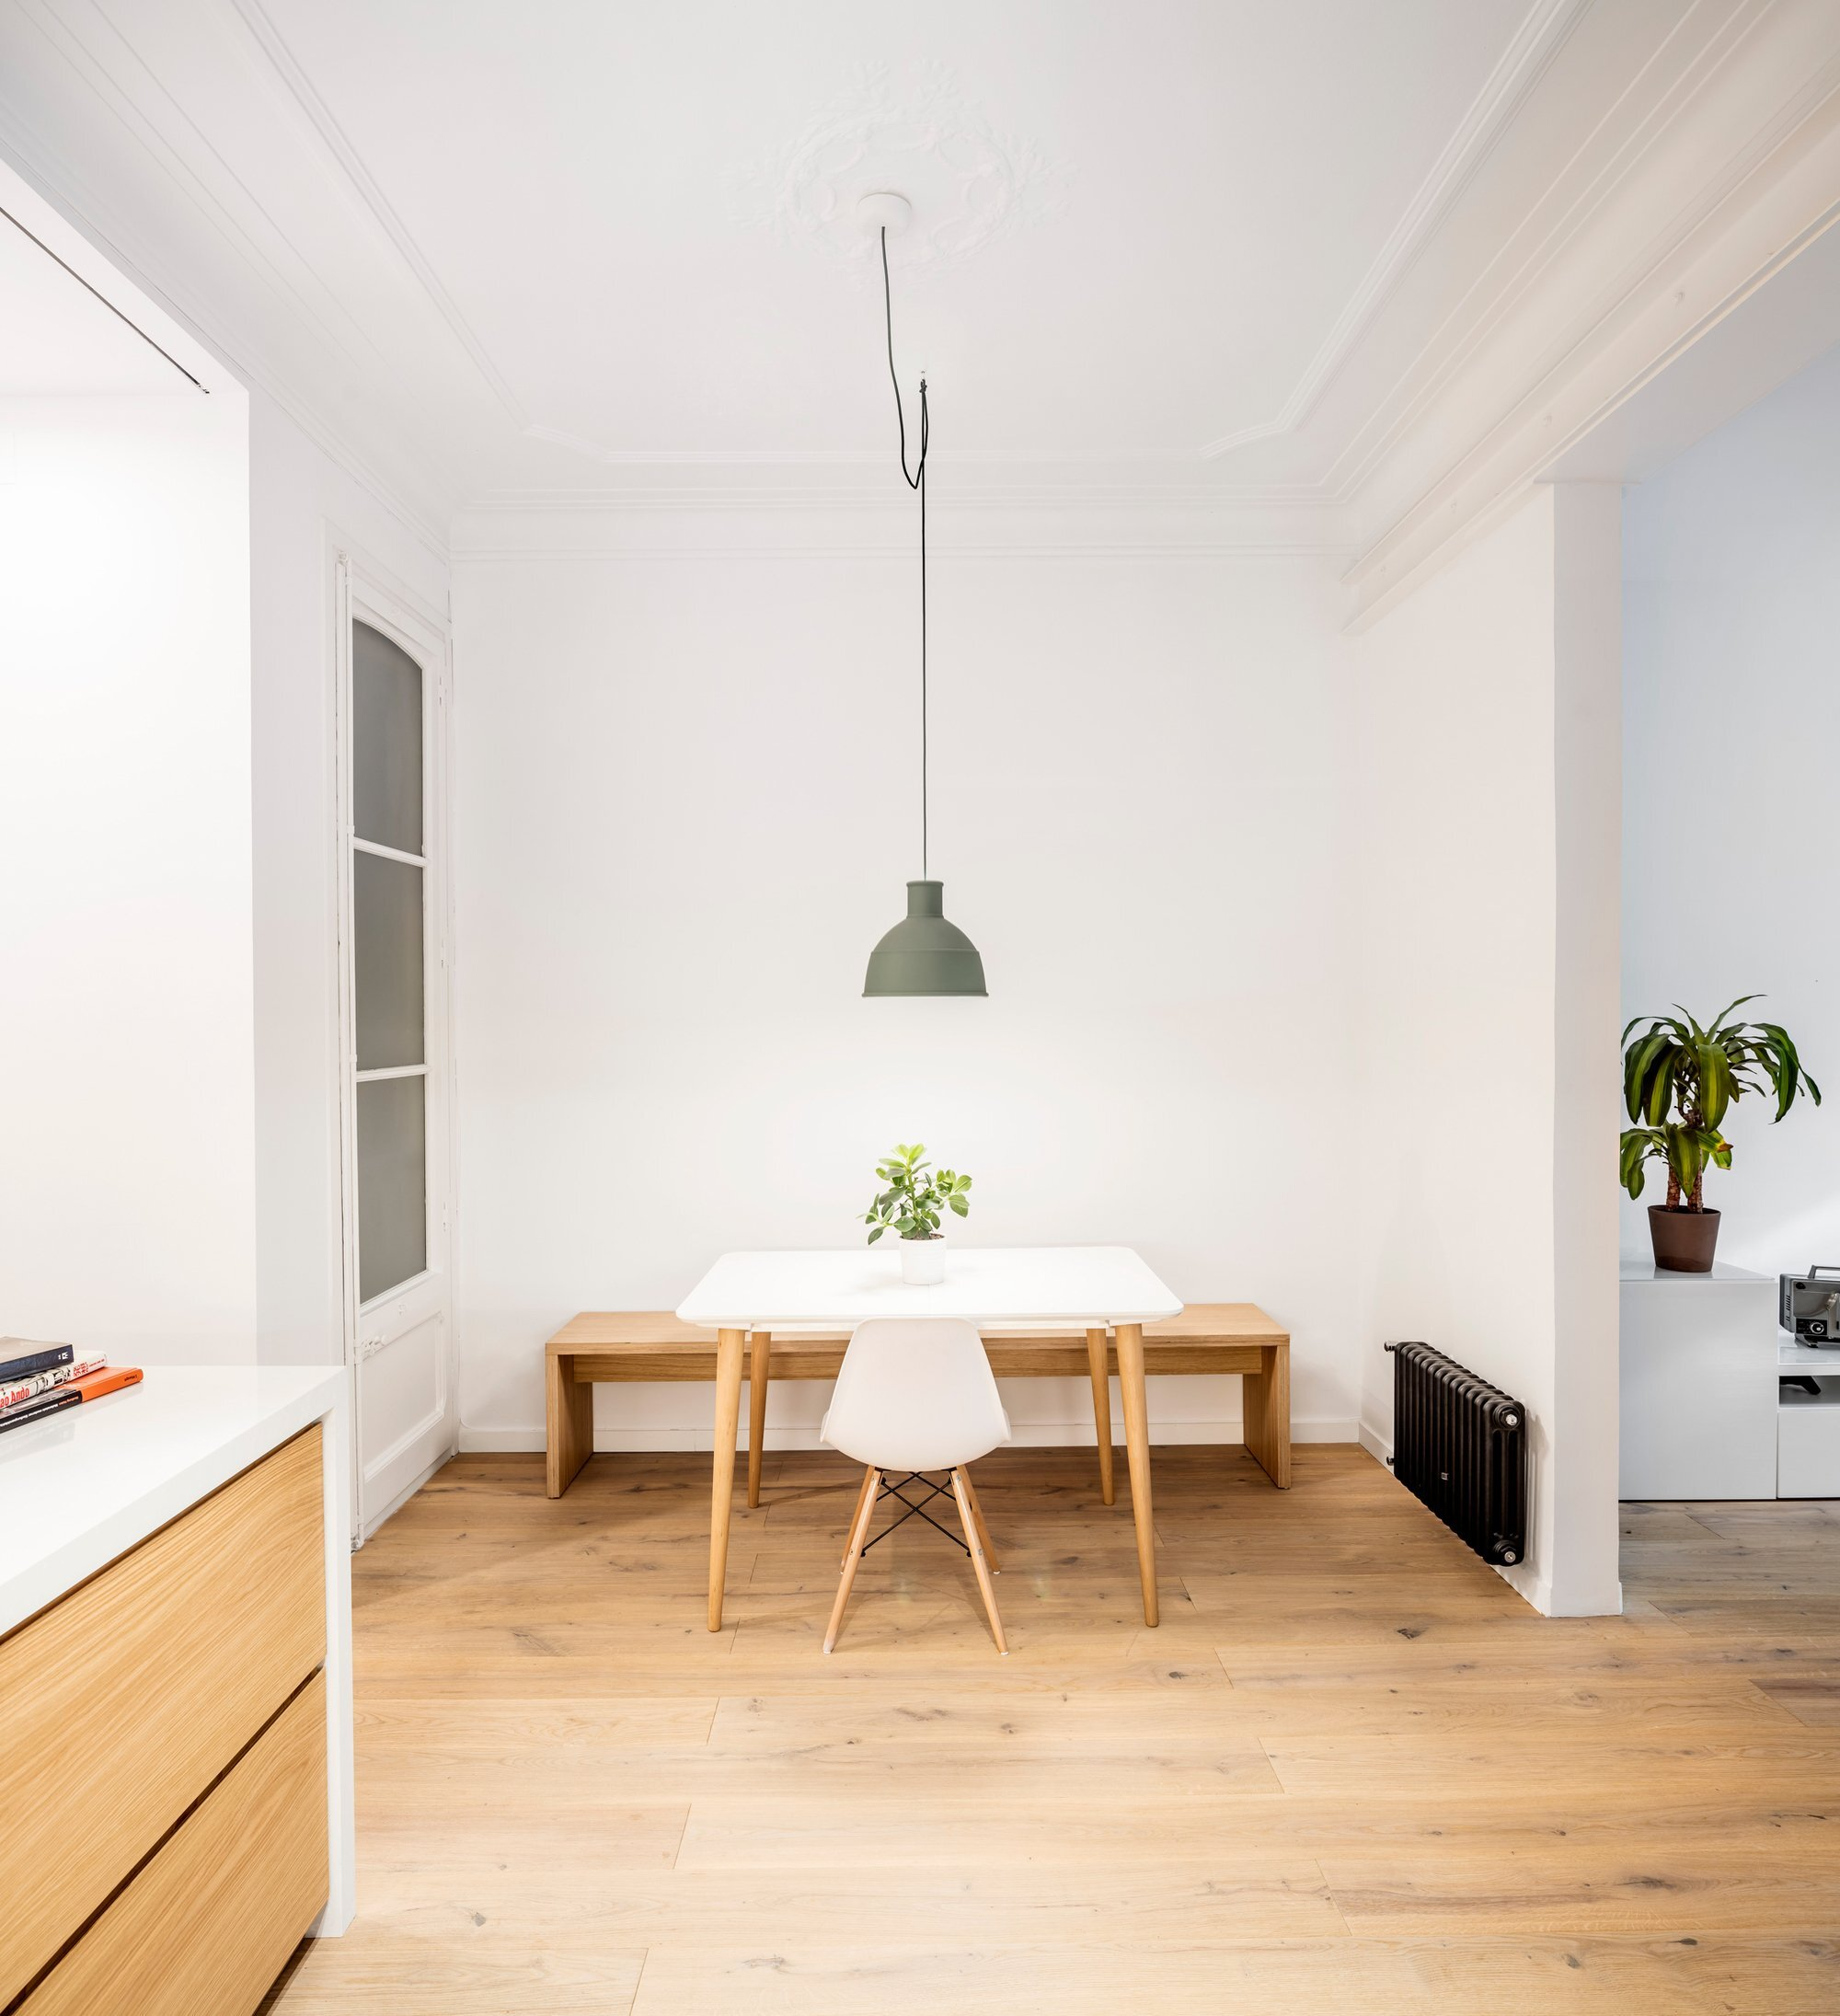 Alan's Apartment Renovation - EO arquitectura - Spain - Study Area - Humble Homes